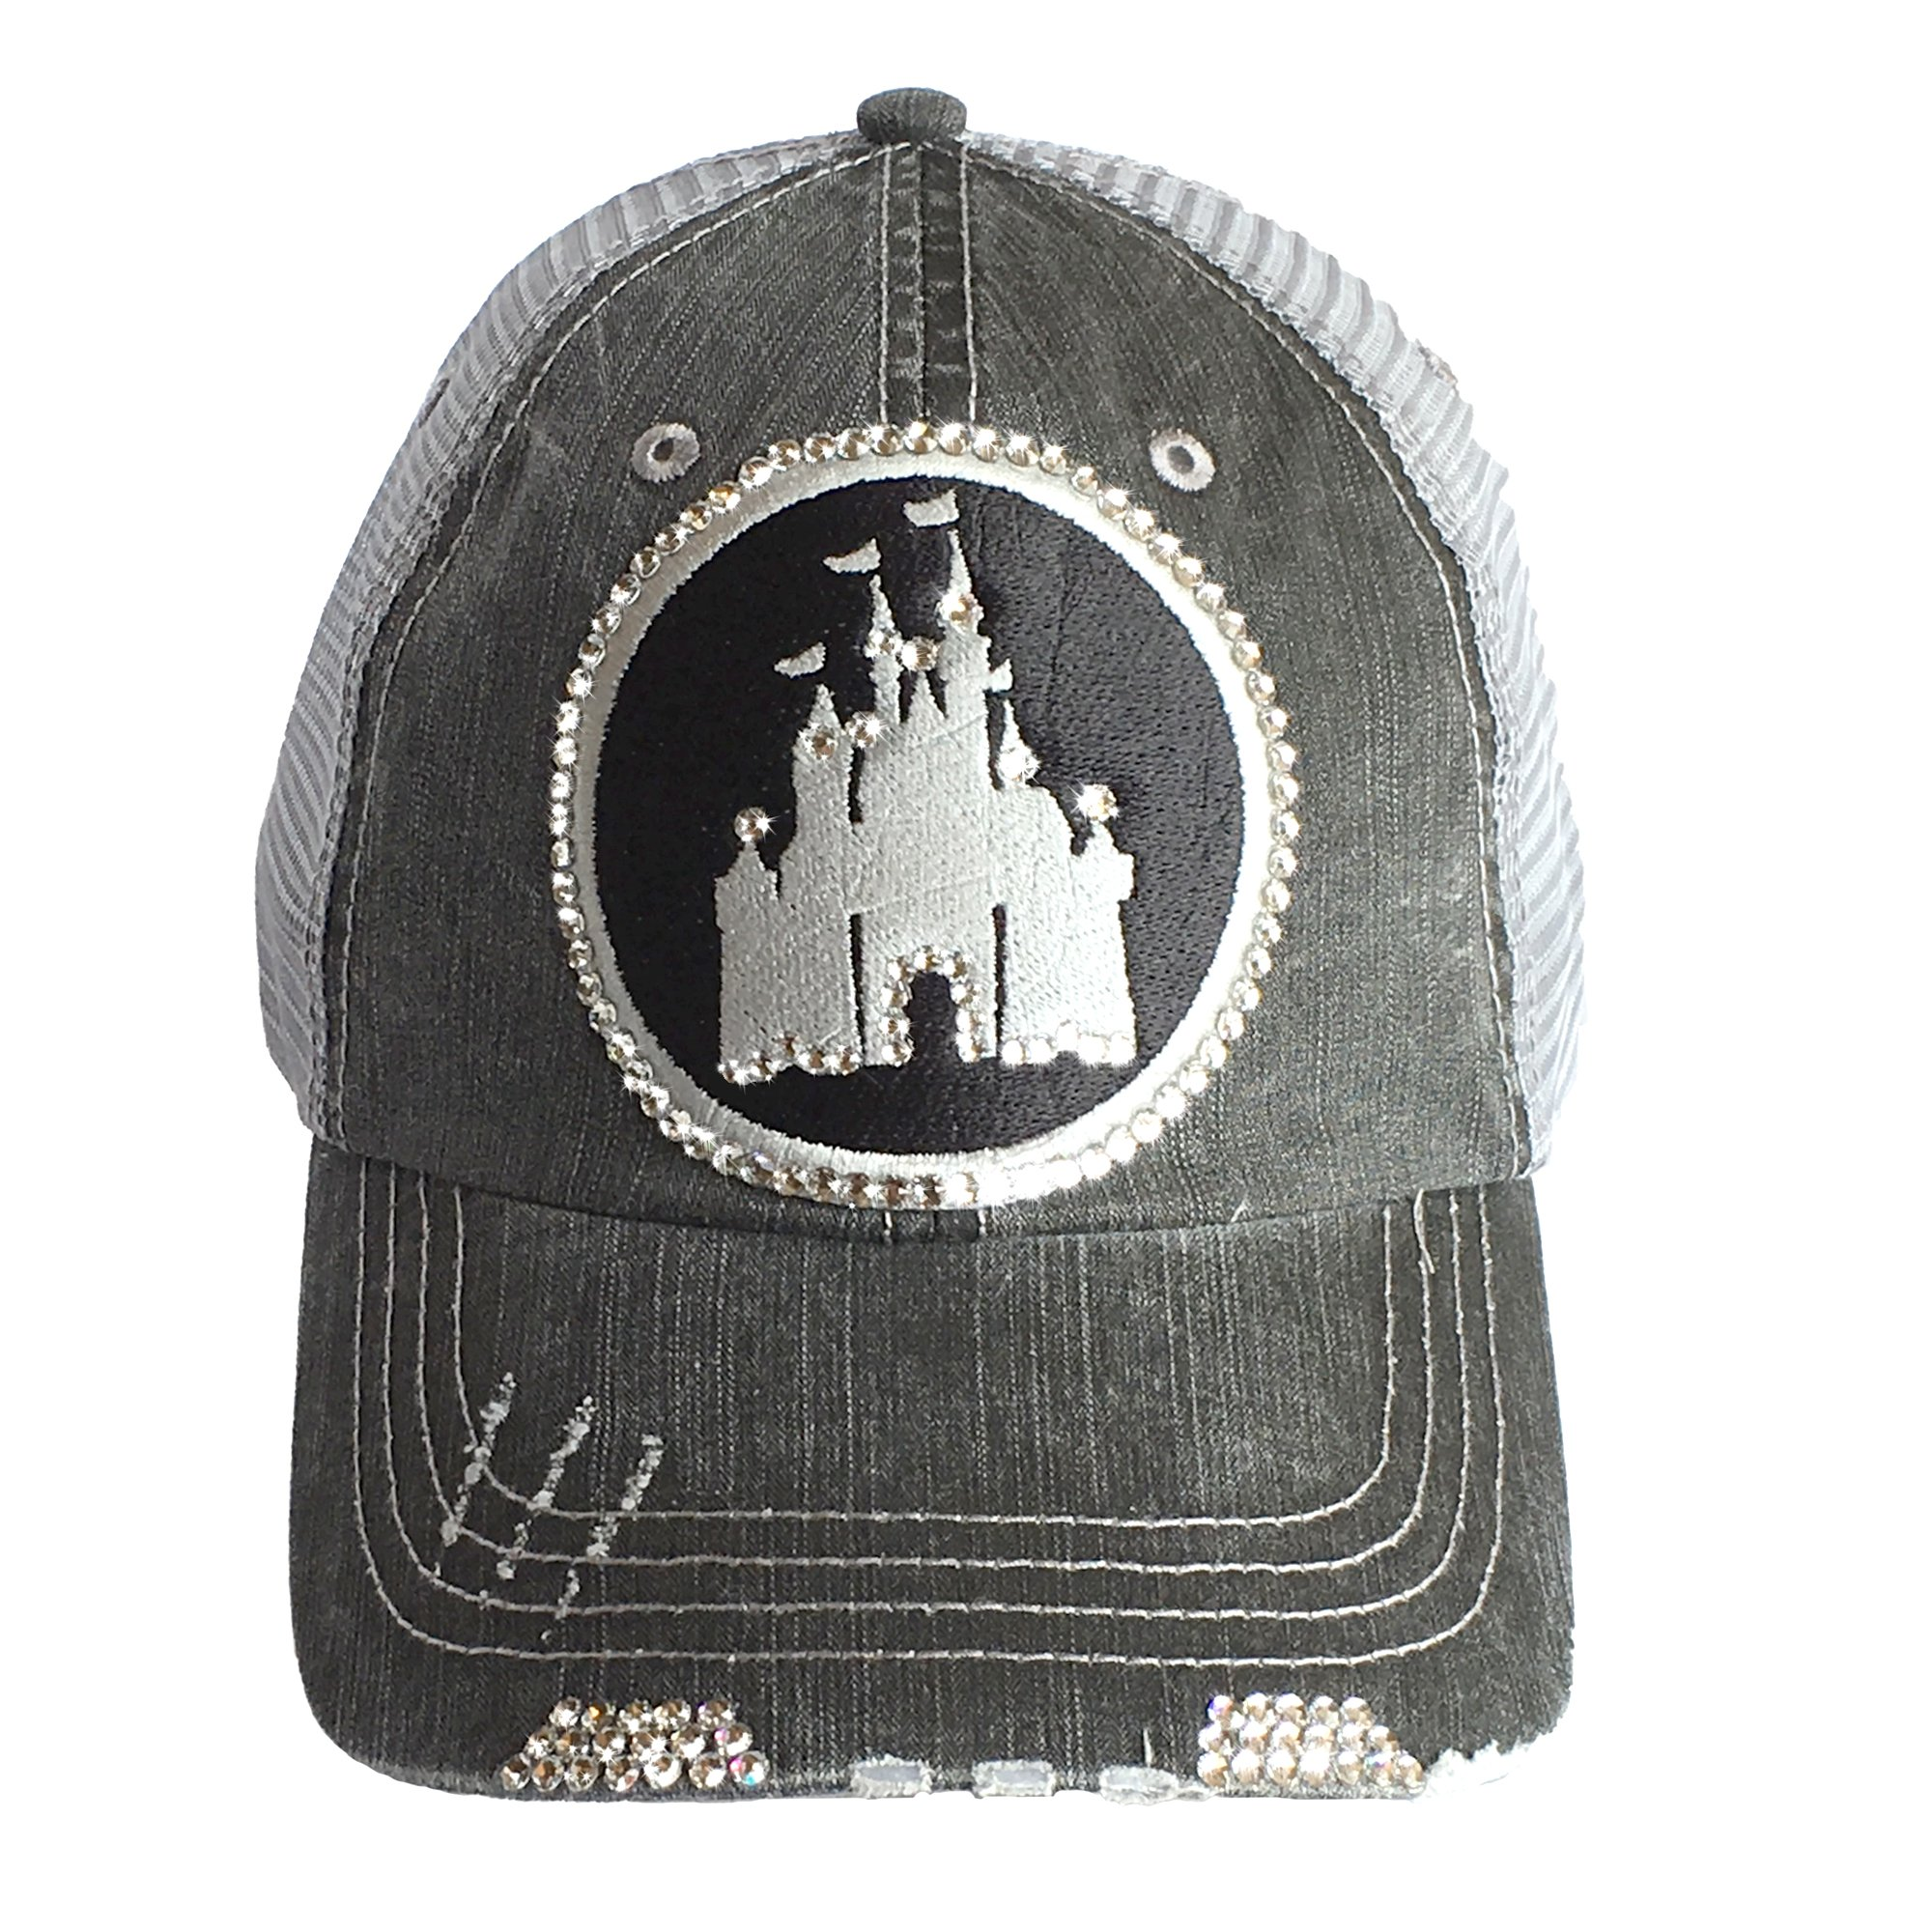 ELIVATA Womens Disney Castle Fitted Trucker Baseball Cap by Swarovski Bling hat,Gray Denim Trucker,One Size